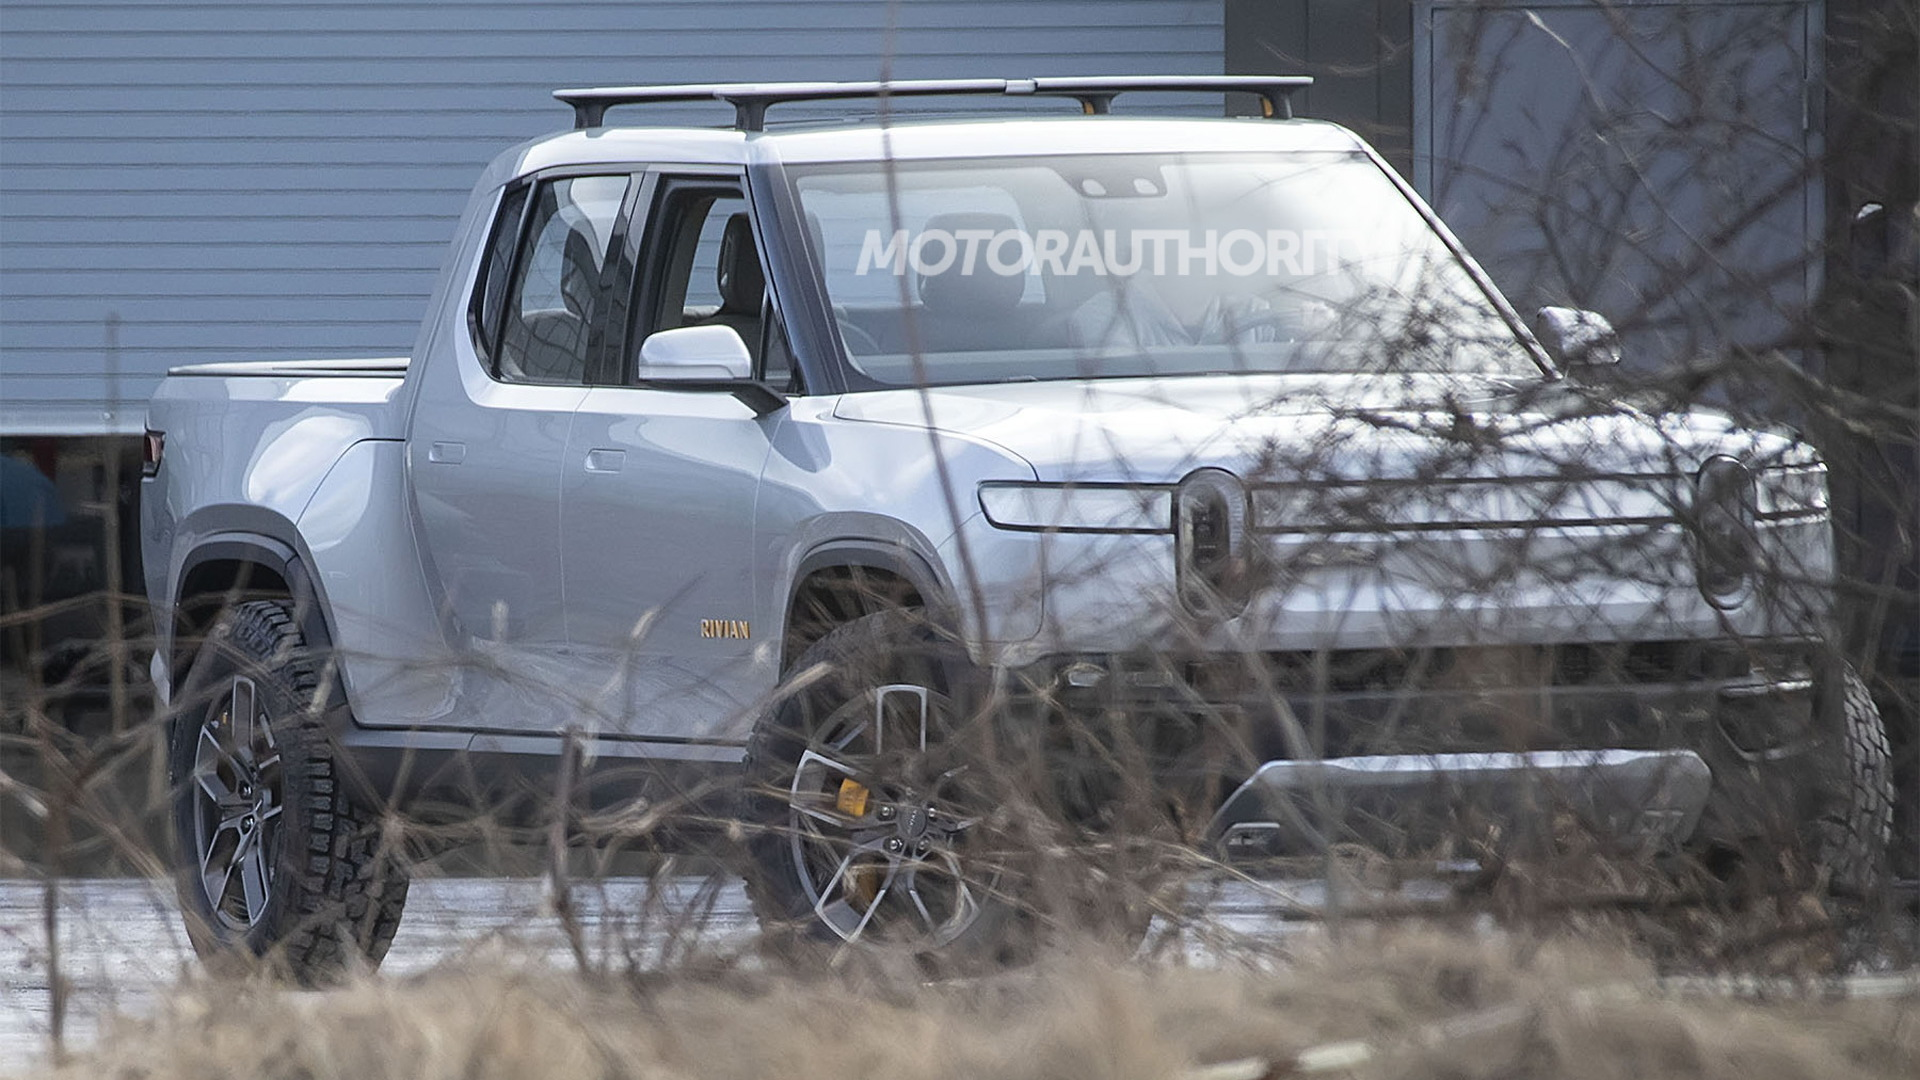 R1T at Rivian's headquarters in Plymouth, Michigan - Image via S. Baldauf/SB-Medien